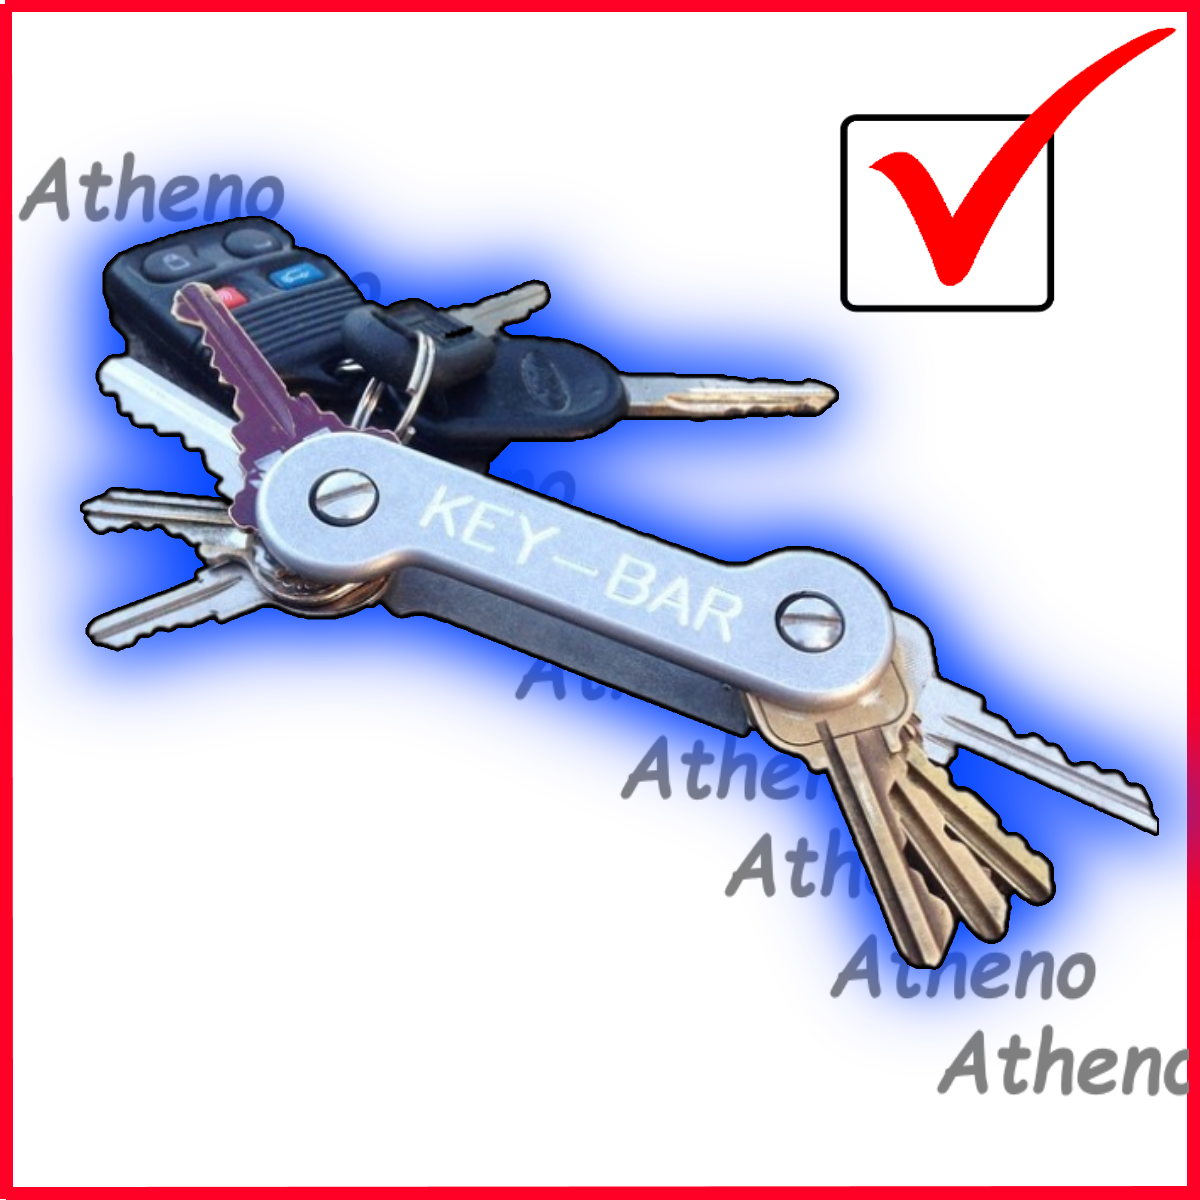 Shoreline key set + free keytools DELIVERY 24/7